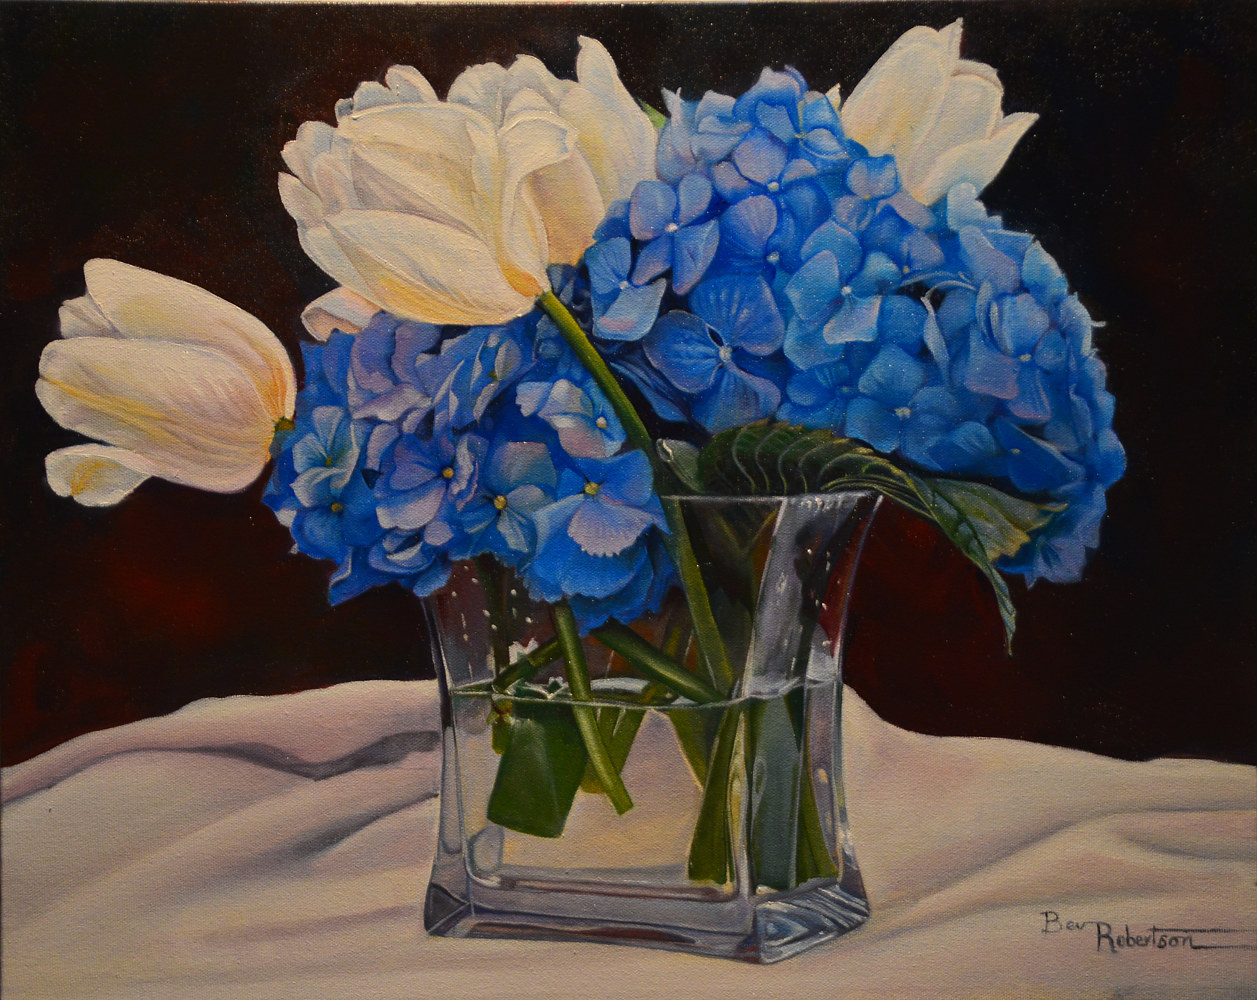 bev-robertson-hydrangea and Tulips1904 by Bev Robertson